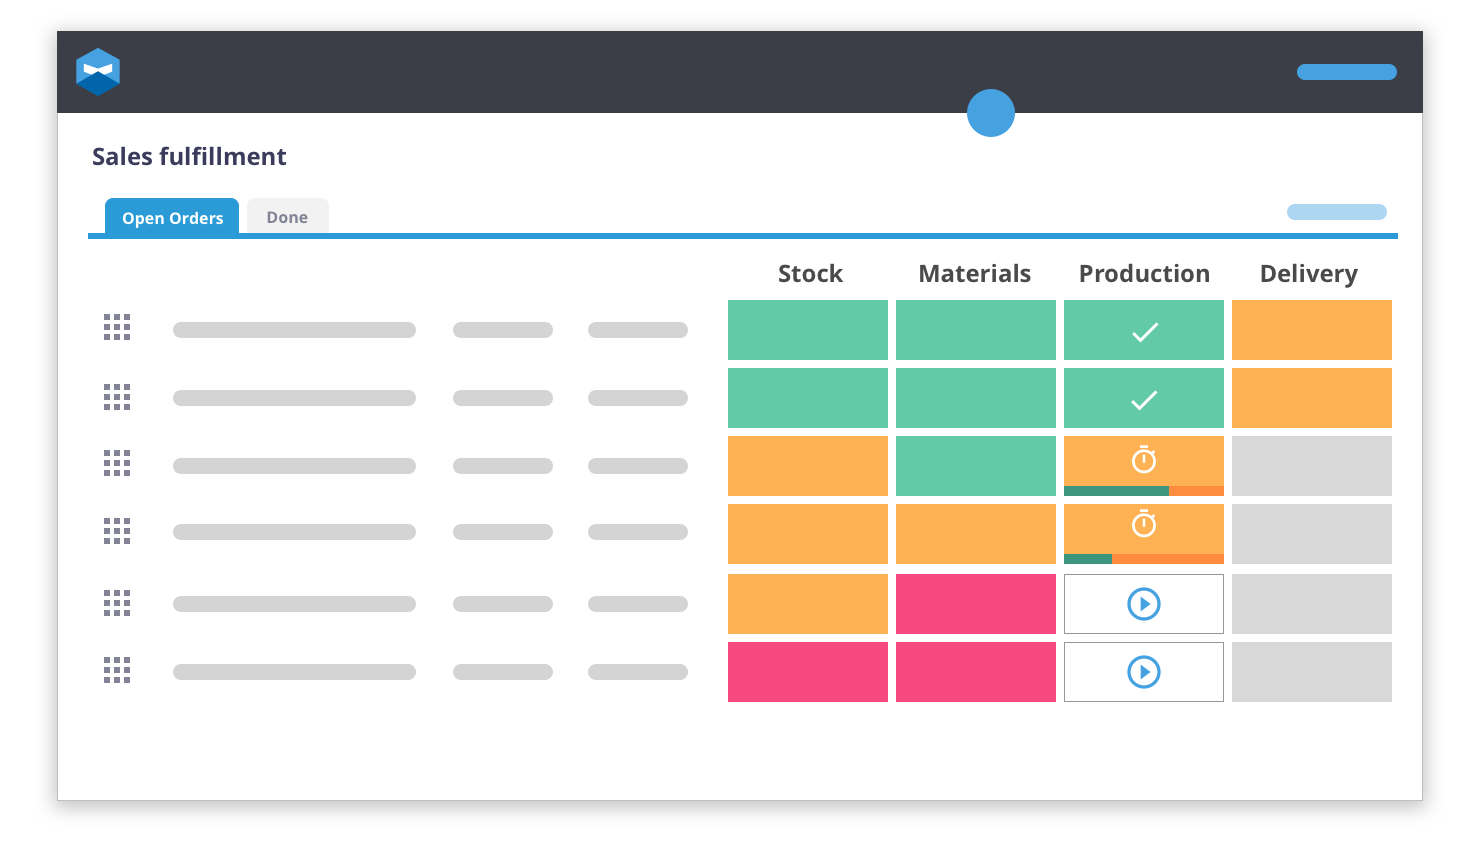 Katana is the simple answer on how to implement a paperless work order for manufacturing business. Because it lays your sales orders out for you from start to finish: stock to material availability to production to delivery.